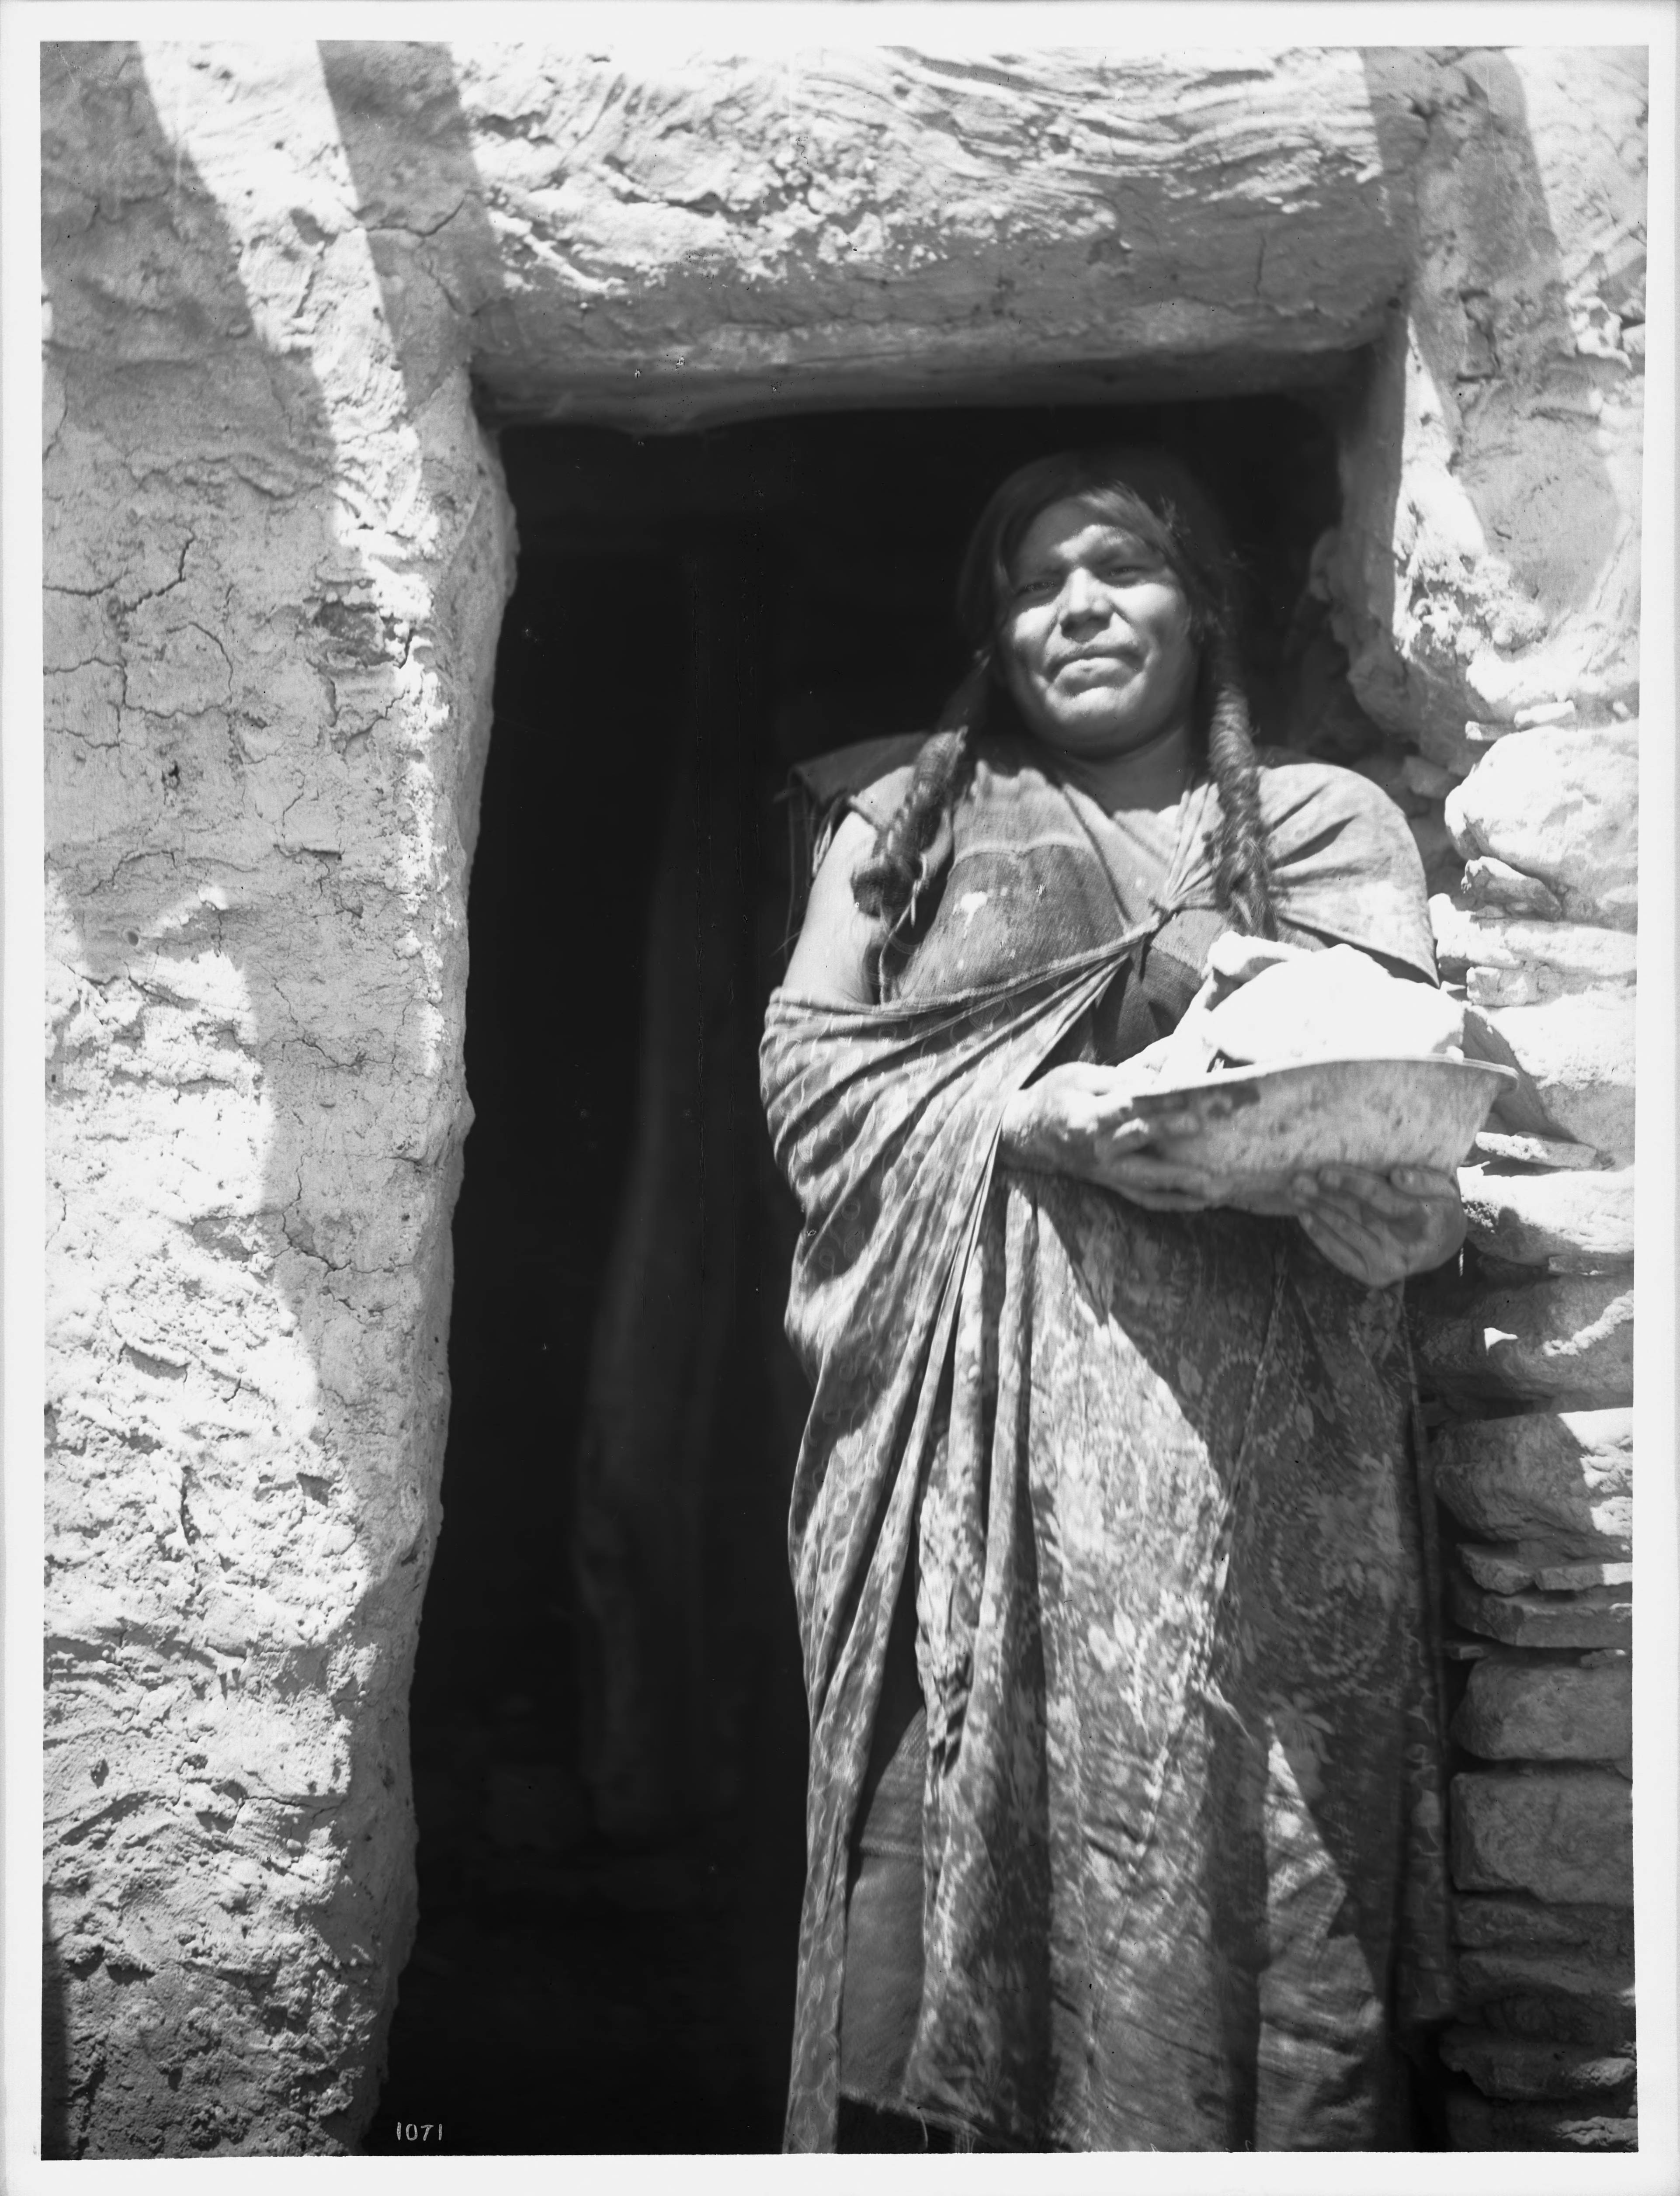 File:Hopi Indian woman holding a stone for house construction in the